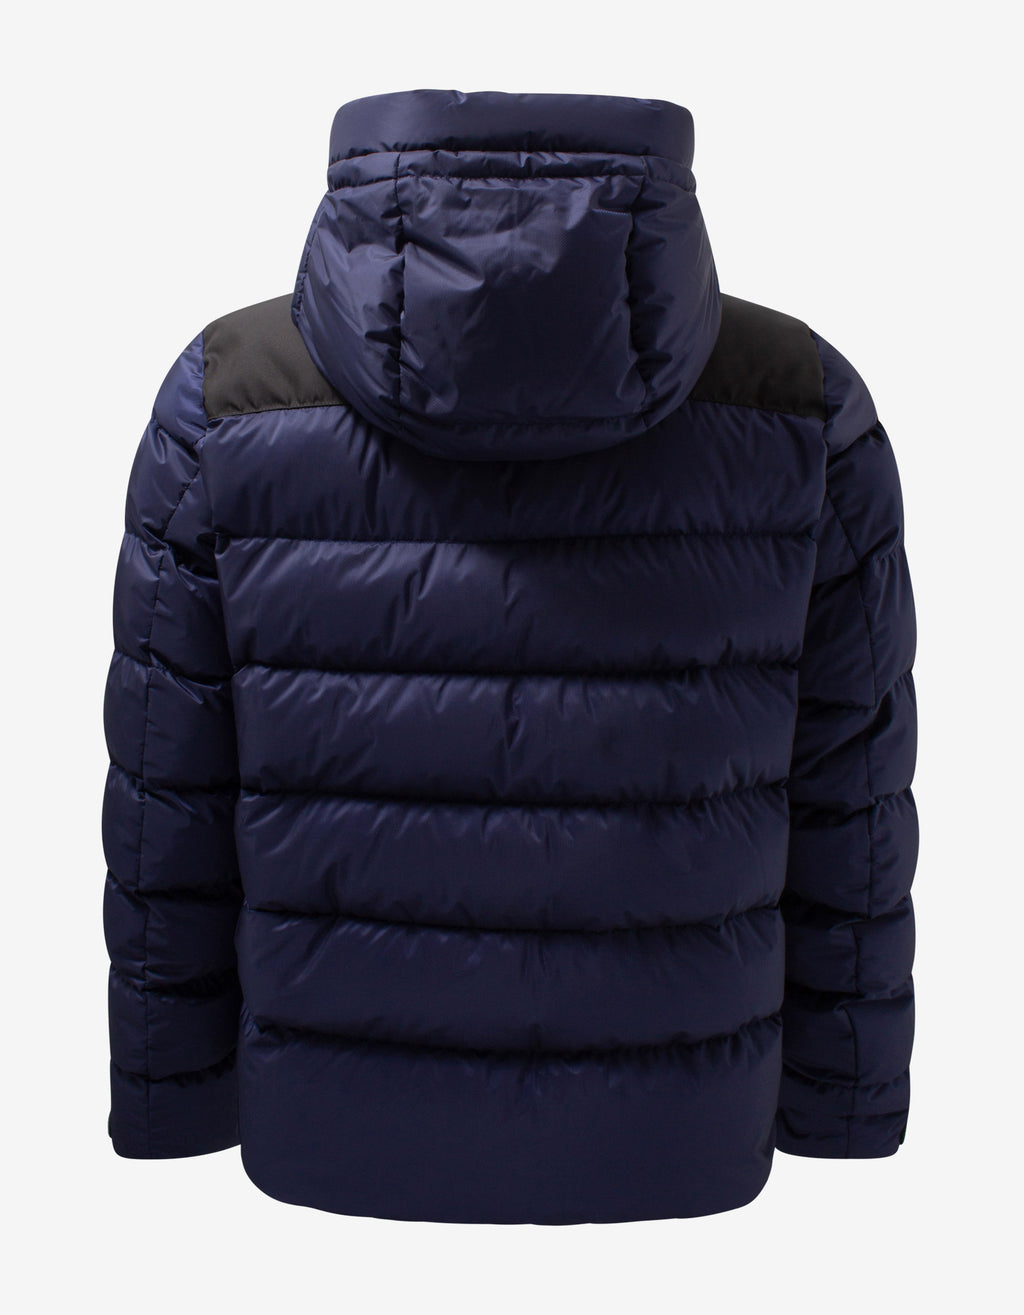 Camurac Navy Blue Down Jacket